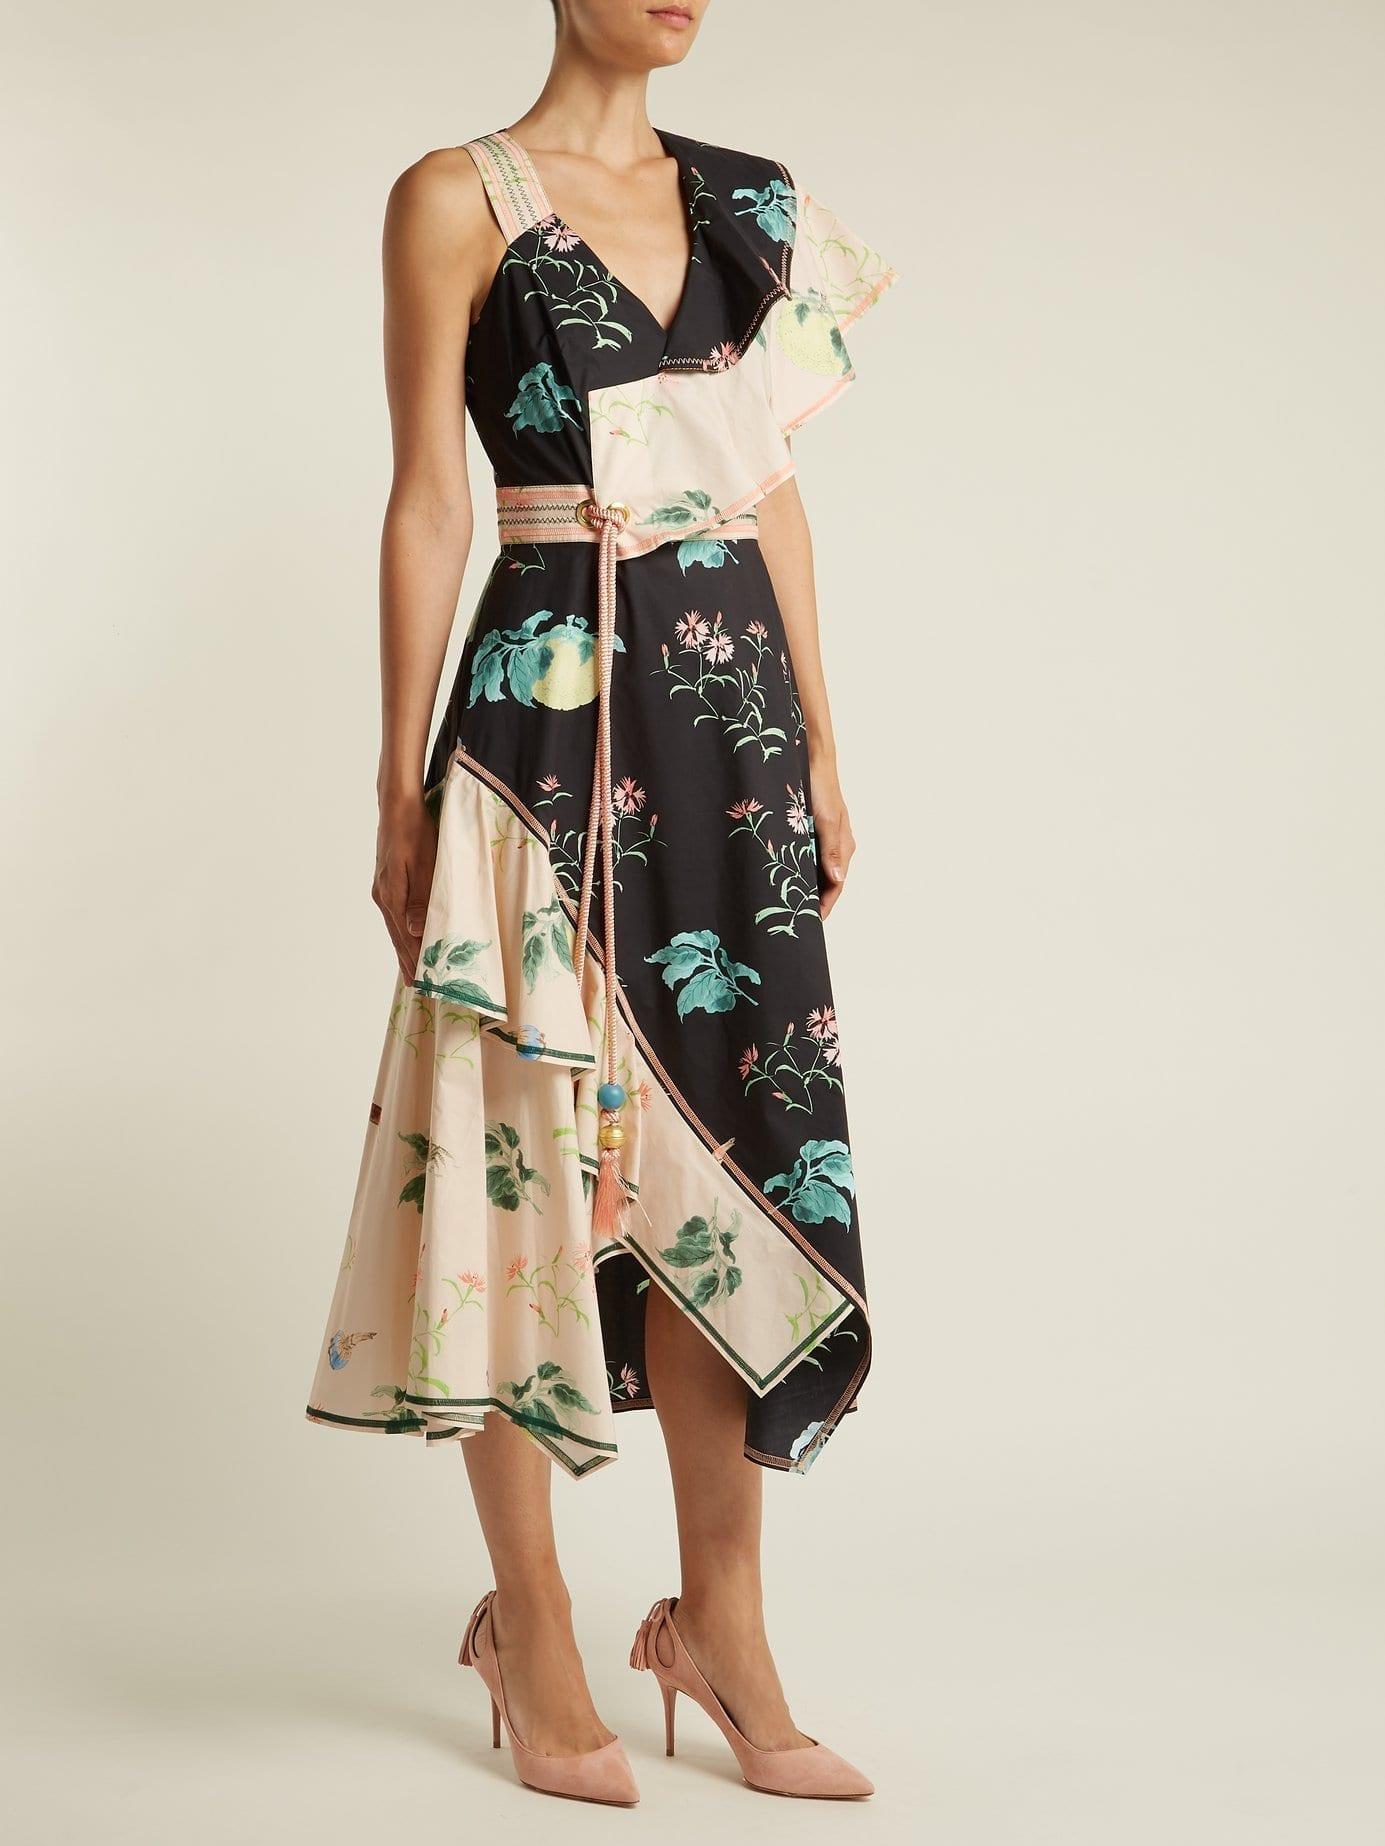 PETER PILOTTO One Shoulder Cotton Black / Floral Printed Dress